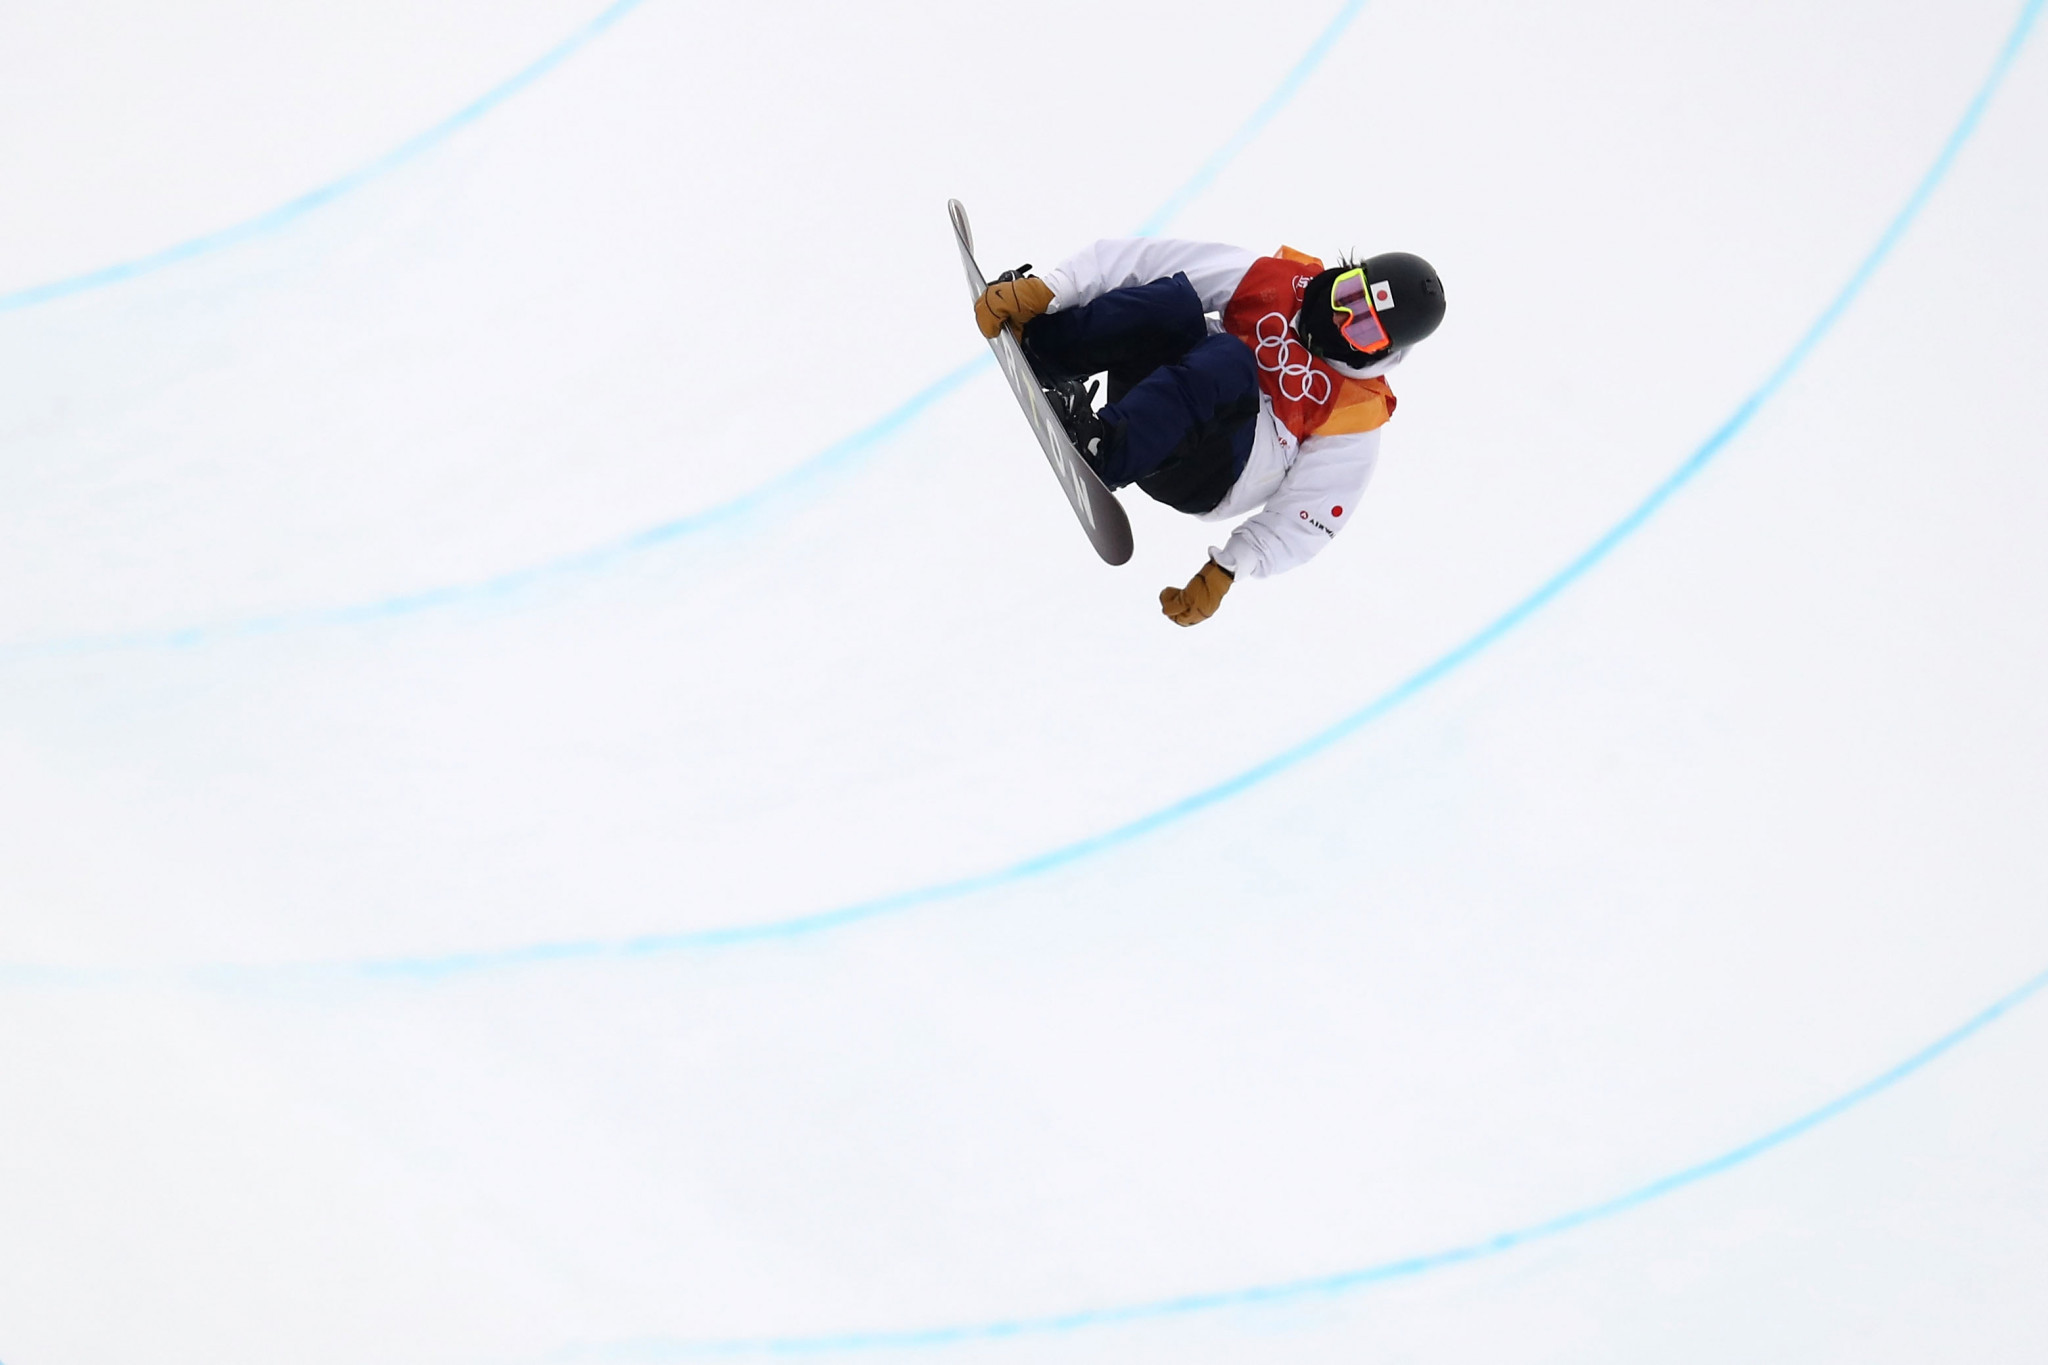 Japan's Ayumu Hirano finished in the silver medal position for the second consecutive Winter Olympic Games ©Getty Images